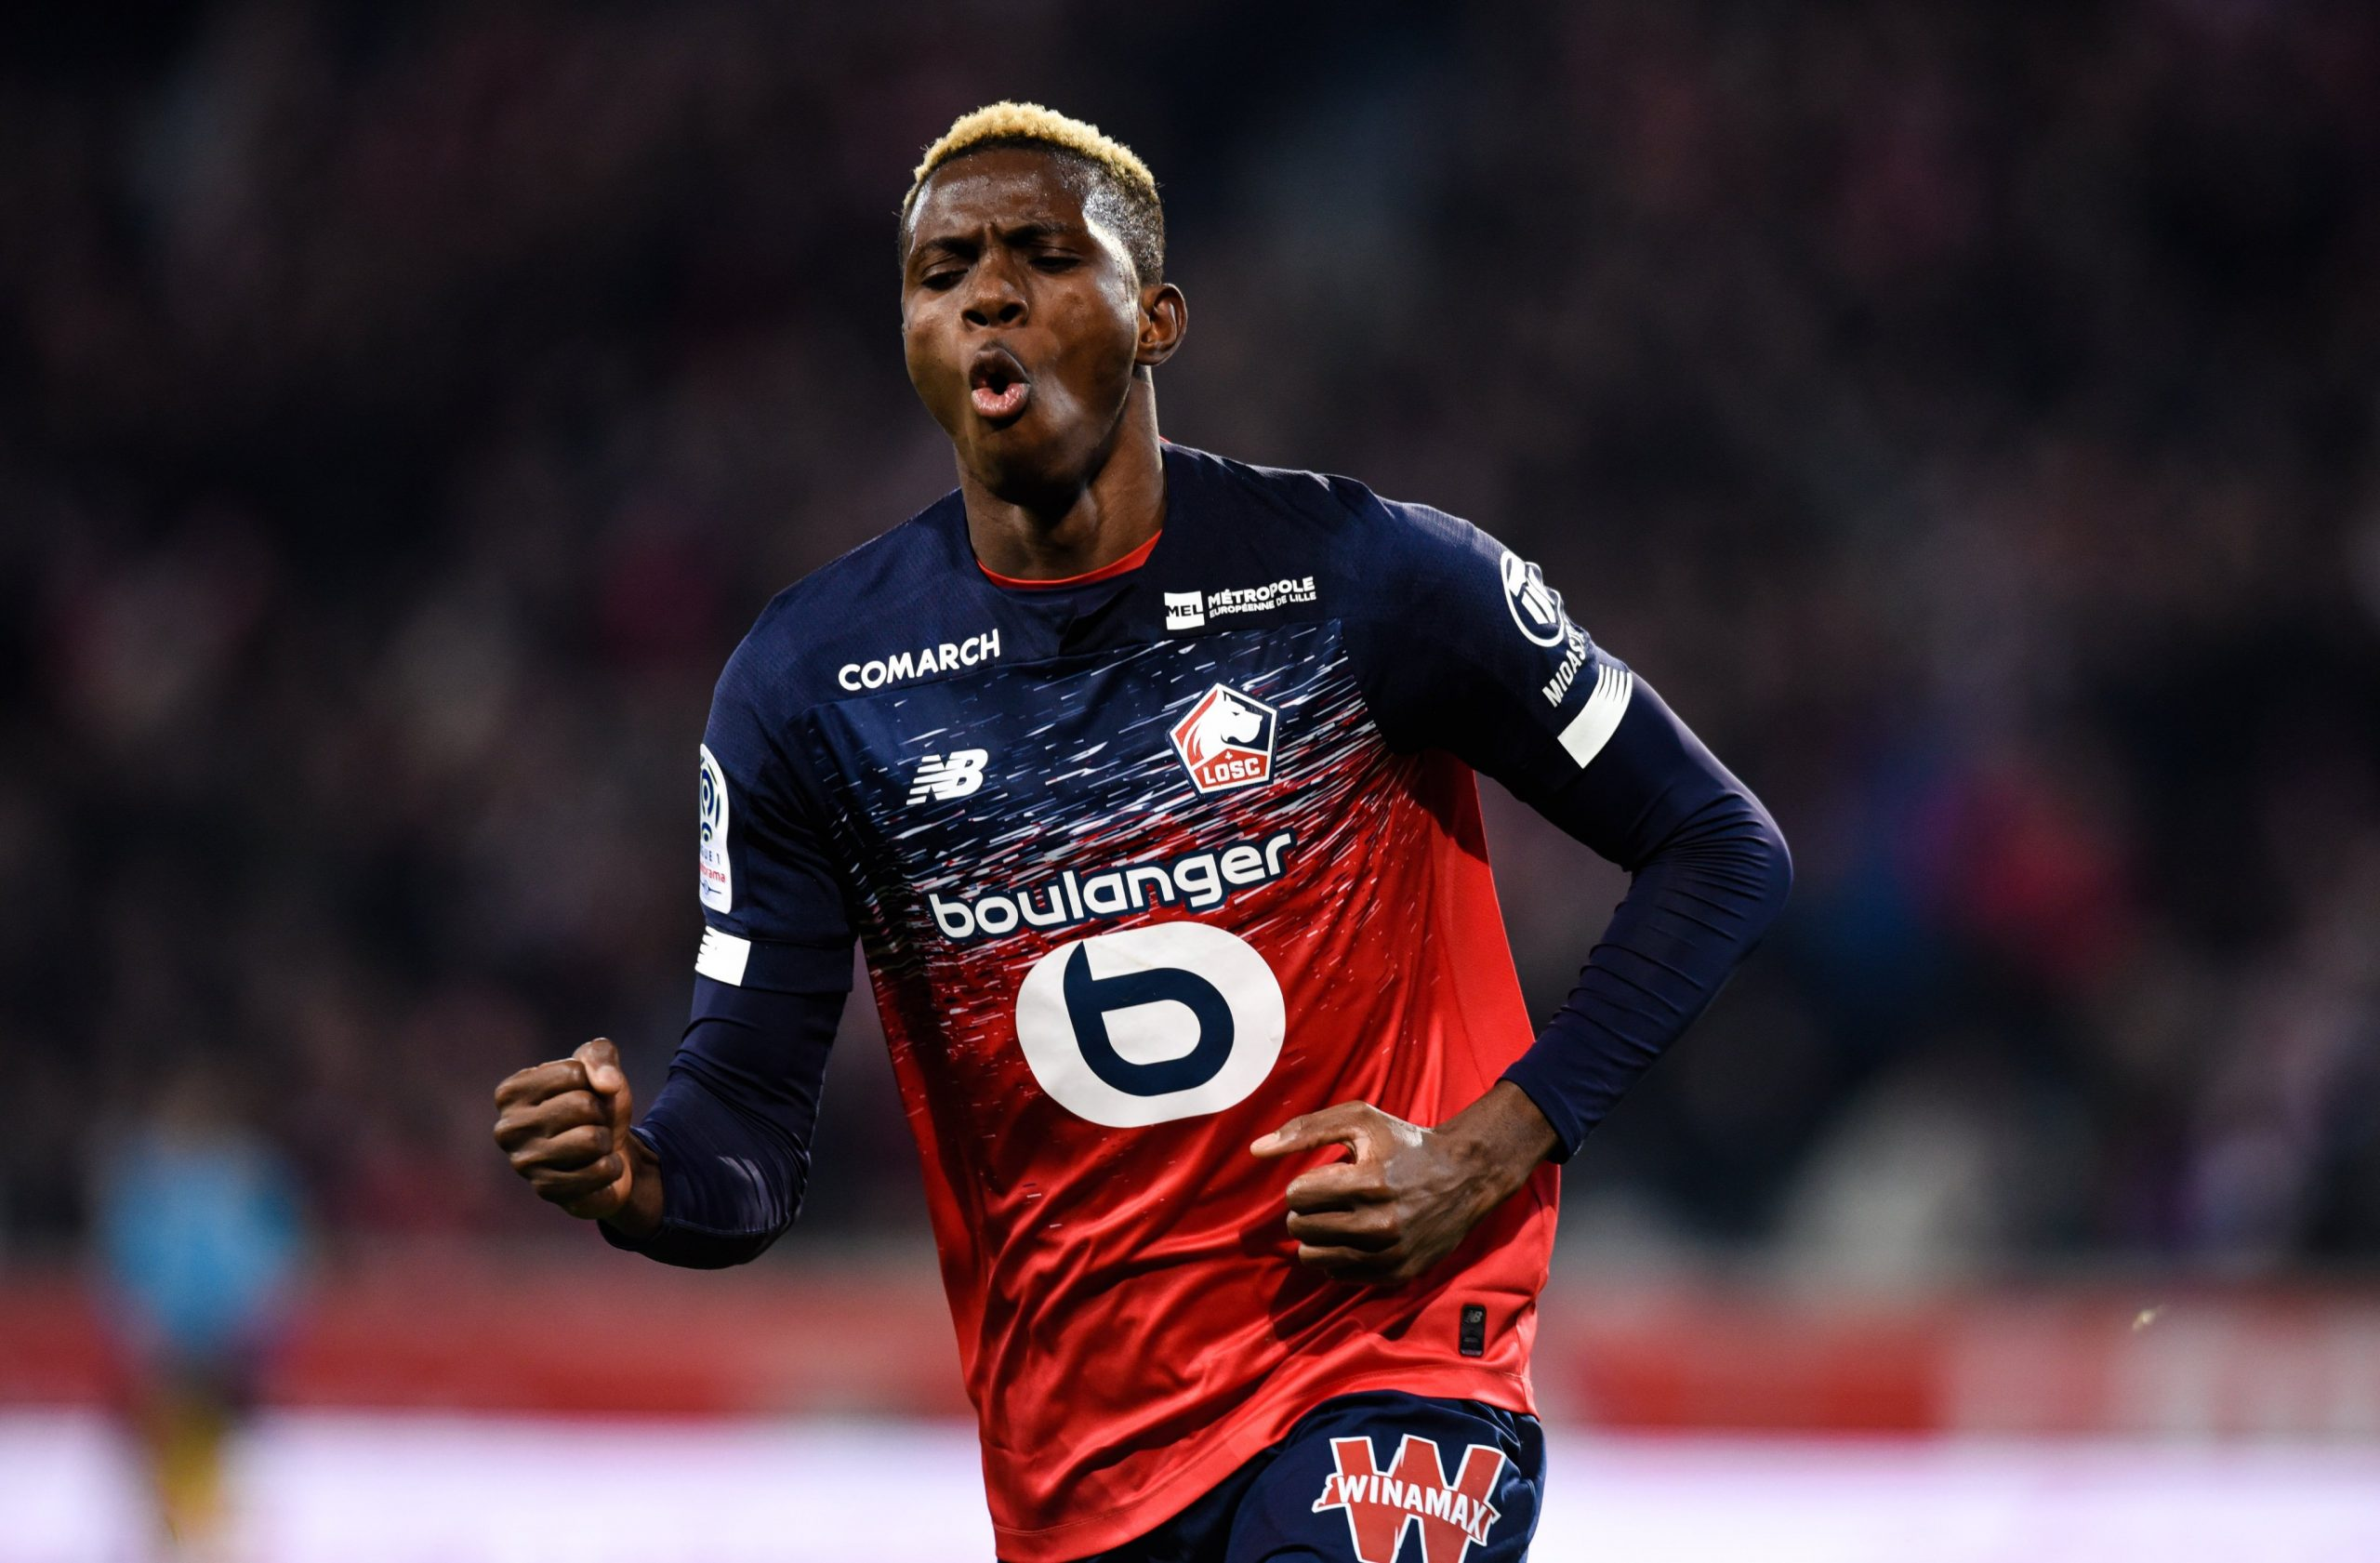 Osimhen Targets Champions League Qualification With Lille